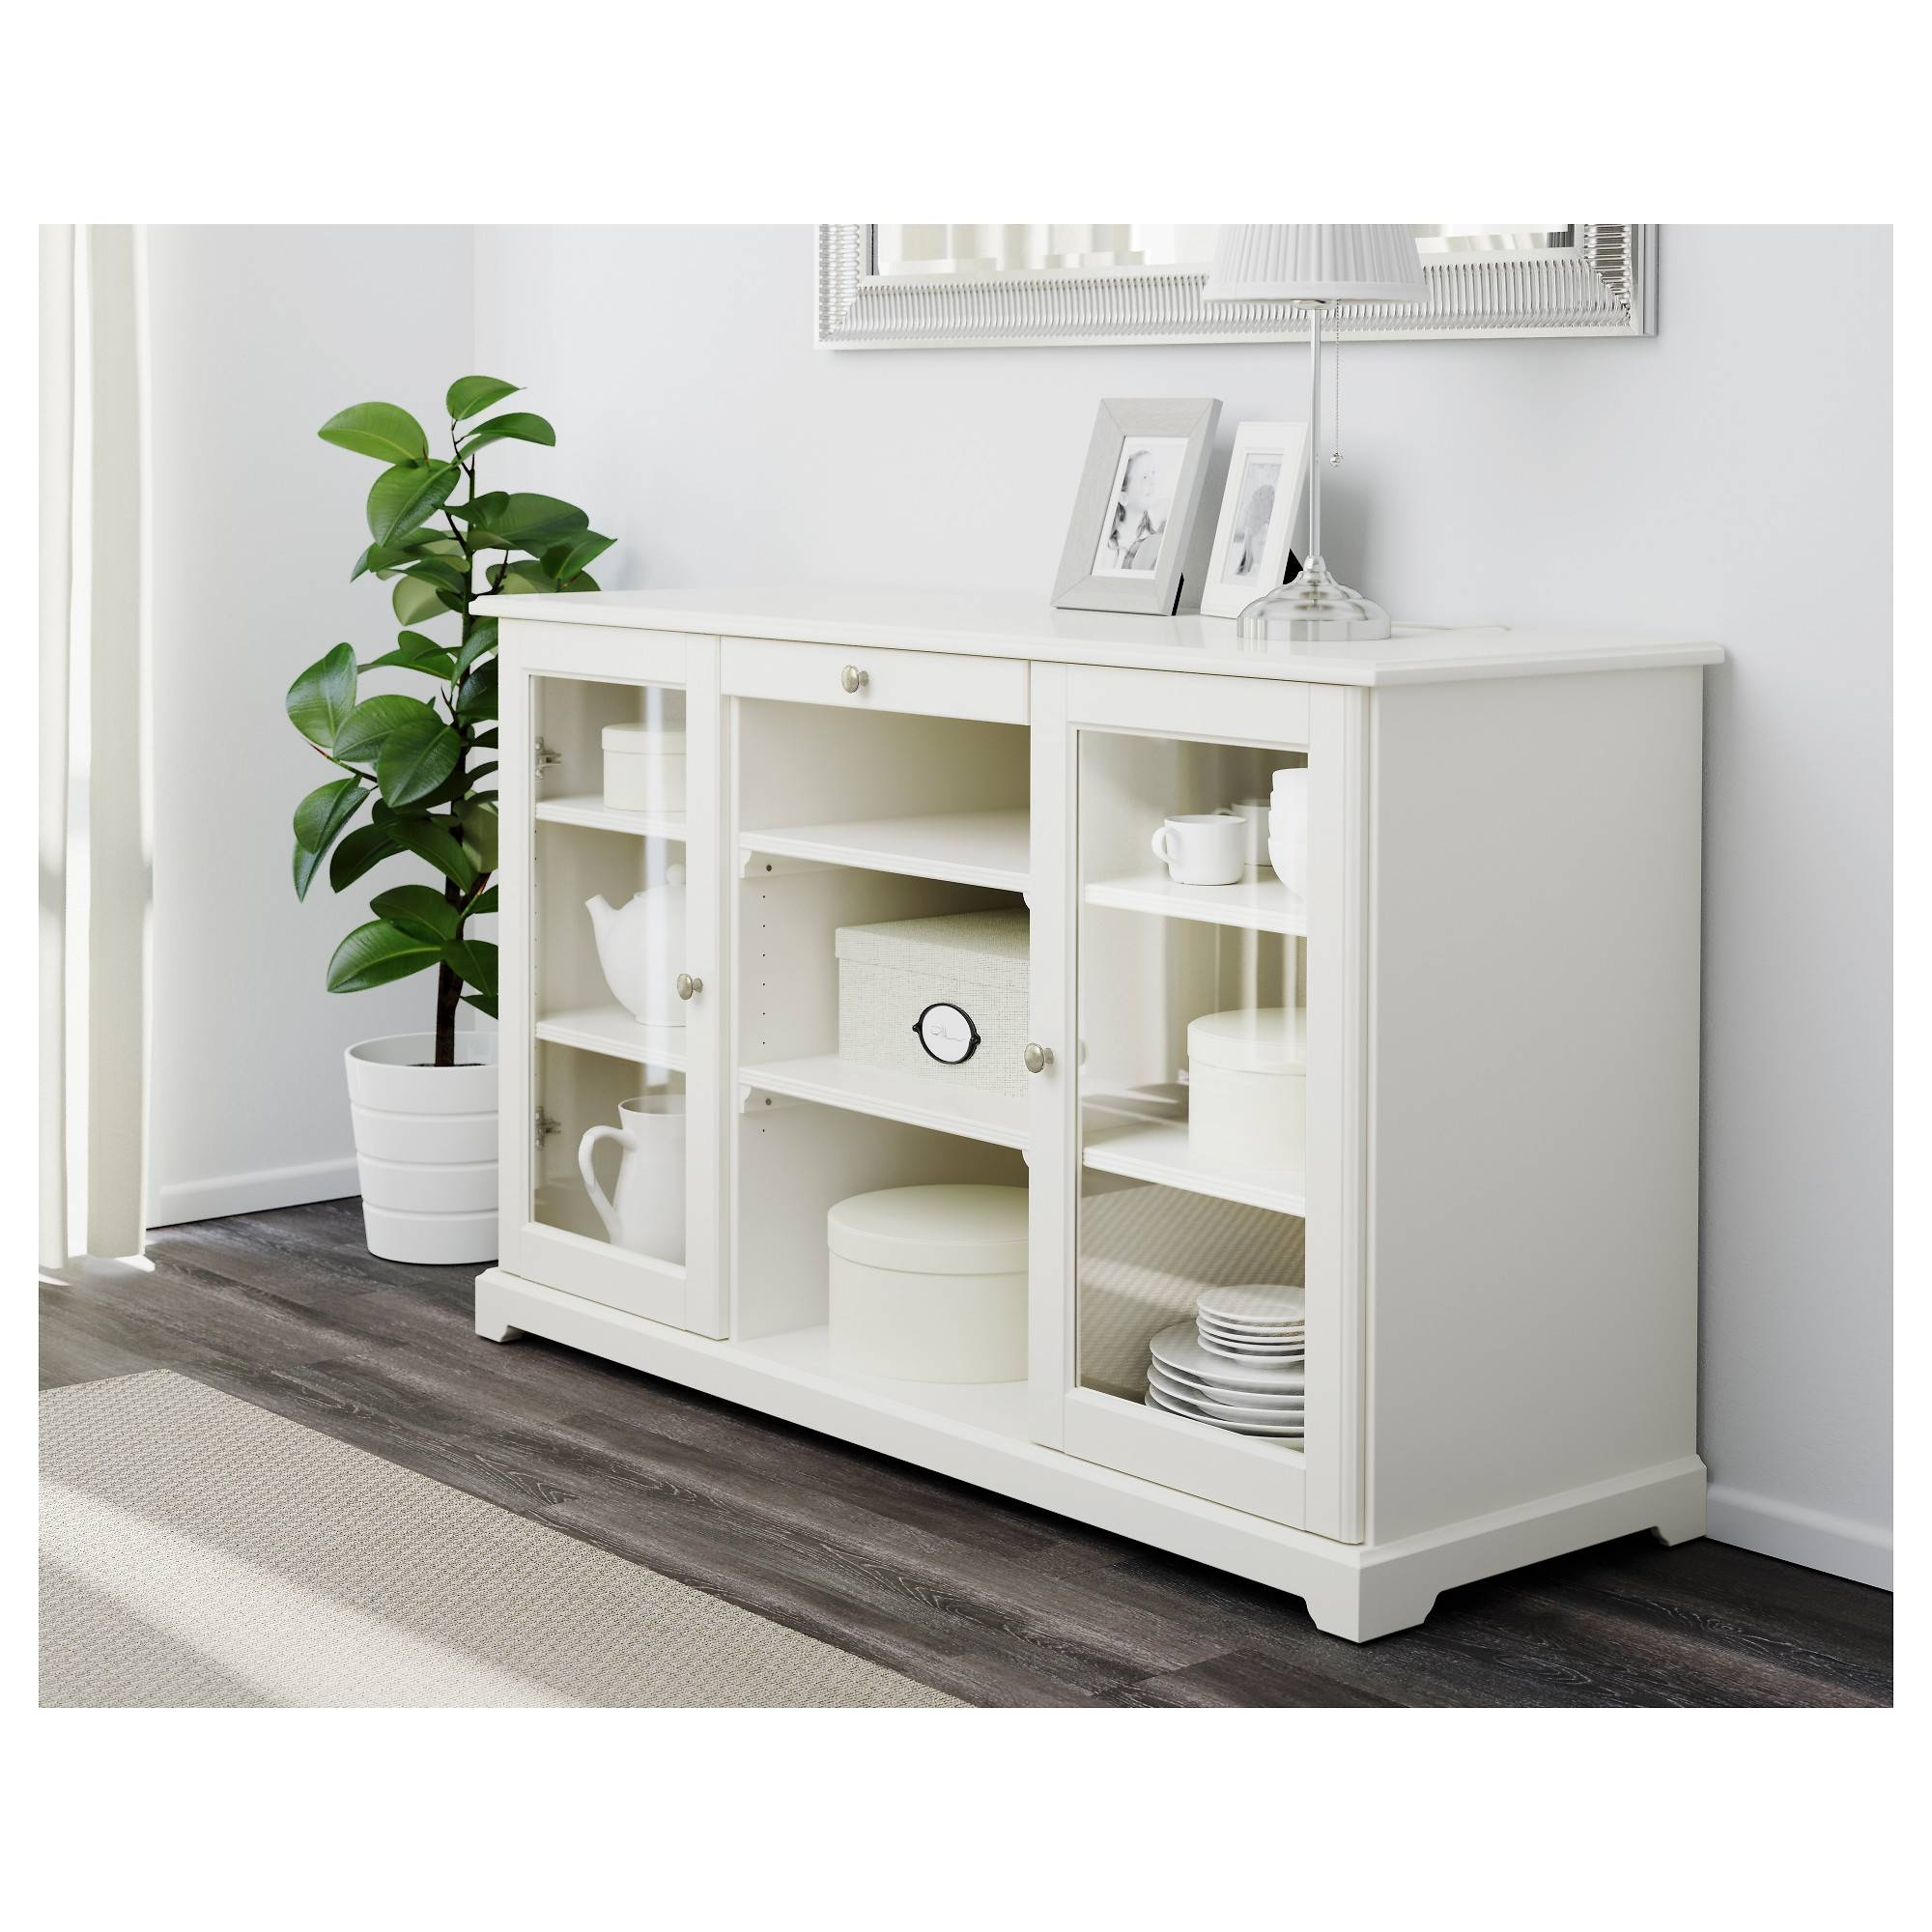 Liatorp Sideboard - White - Ikea for Liatorp Sideboards (Image 9 of 15)